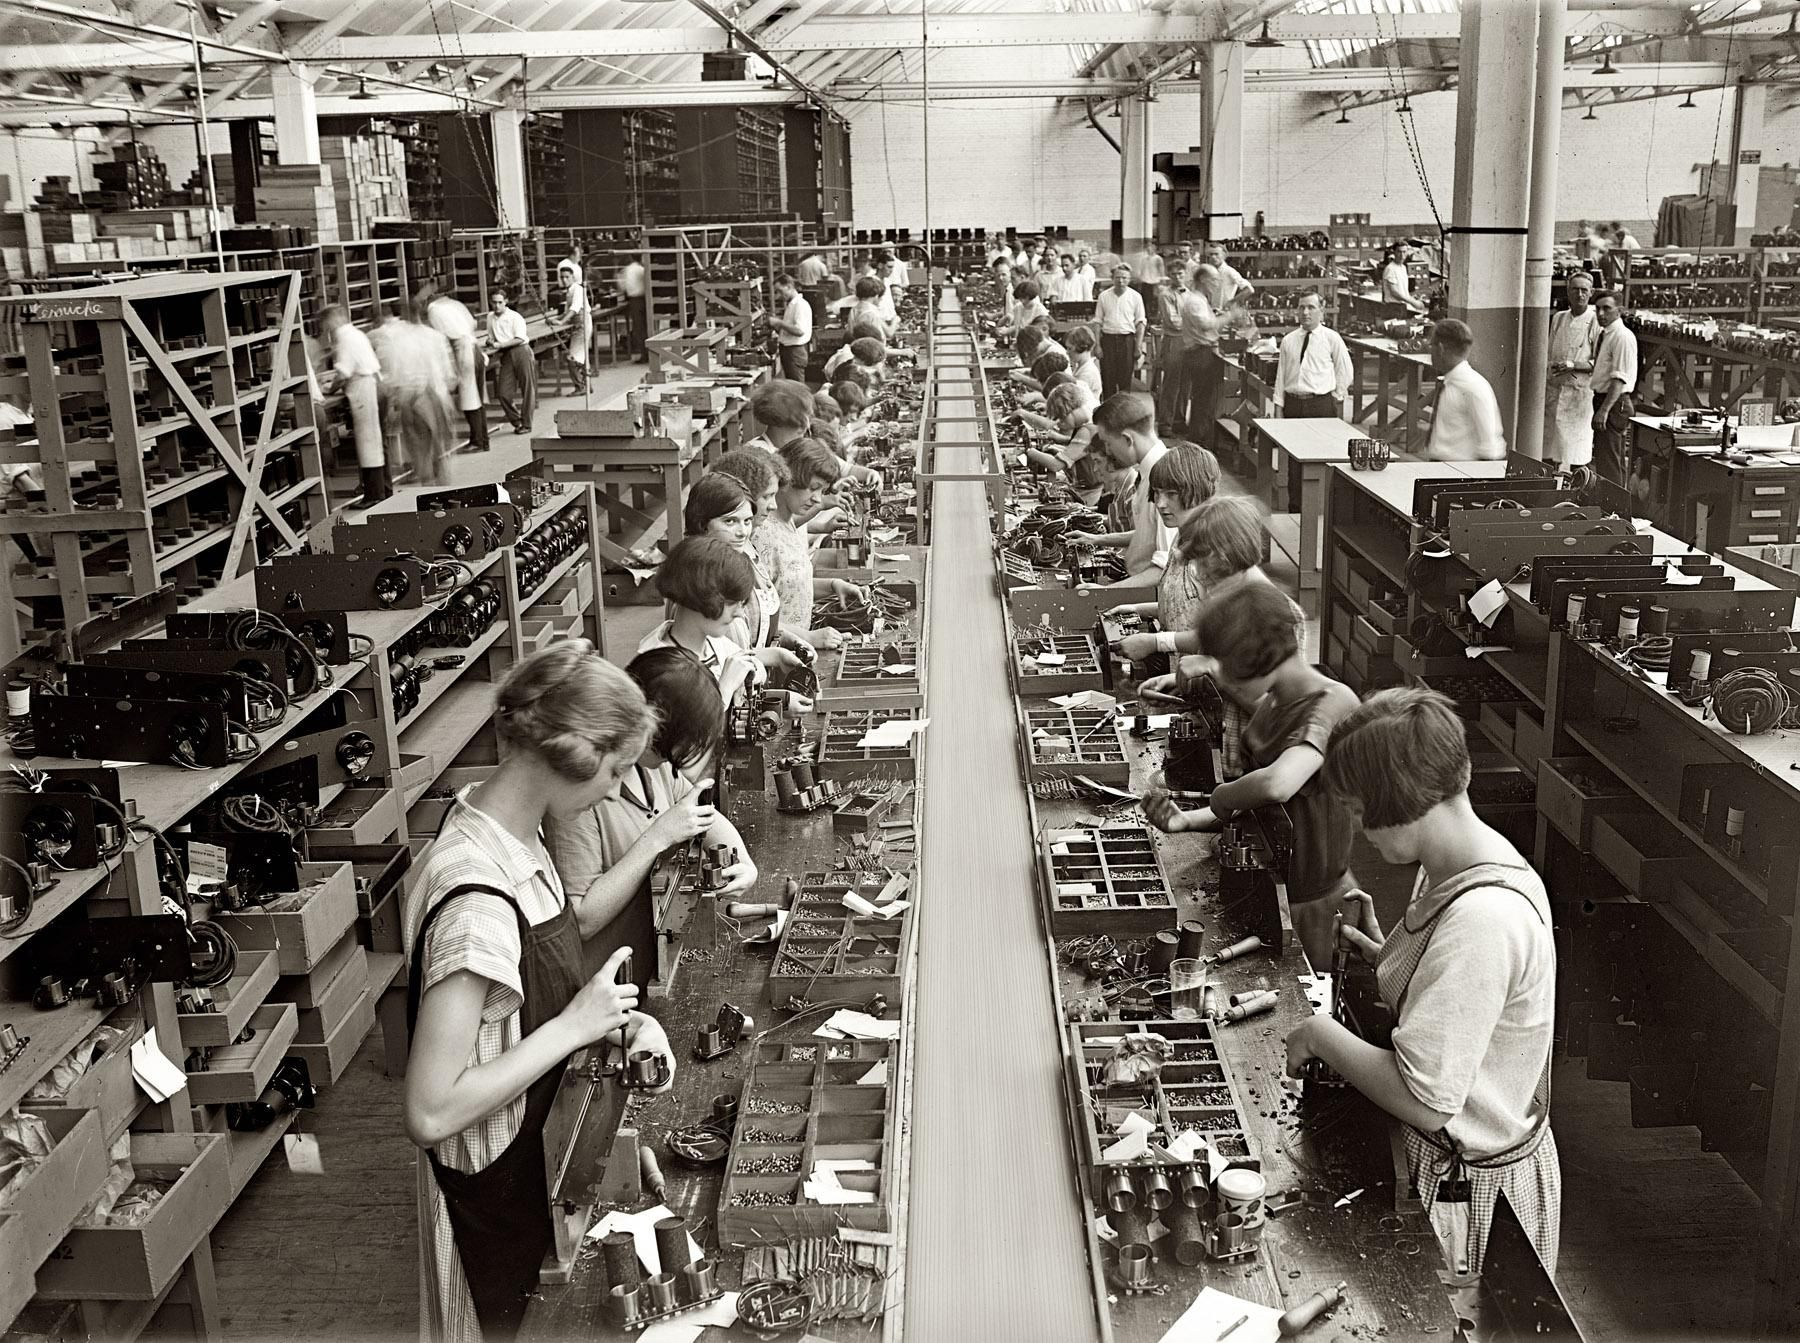 1920 photo of a radio manufacturing assembly line with all